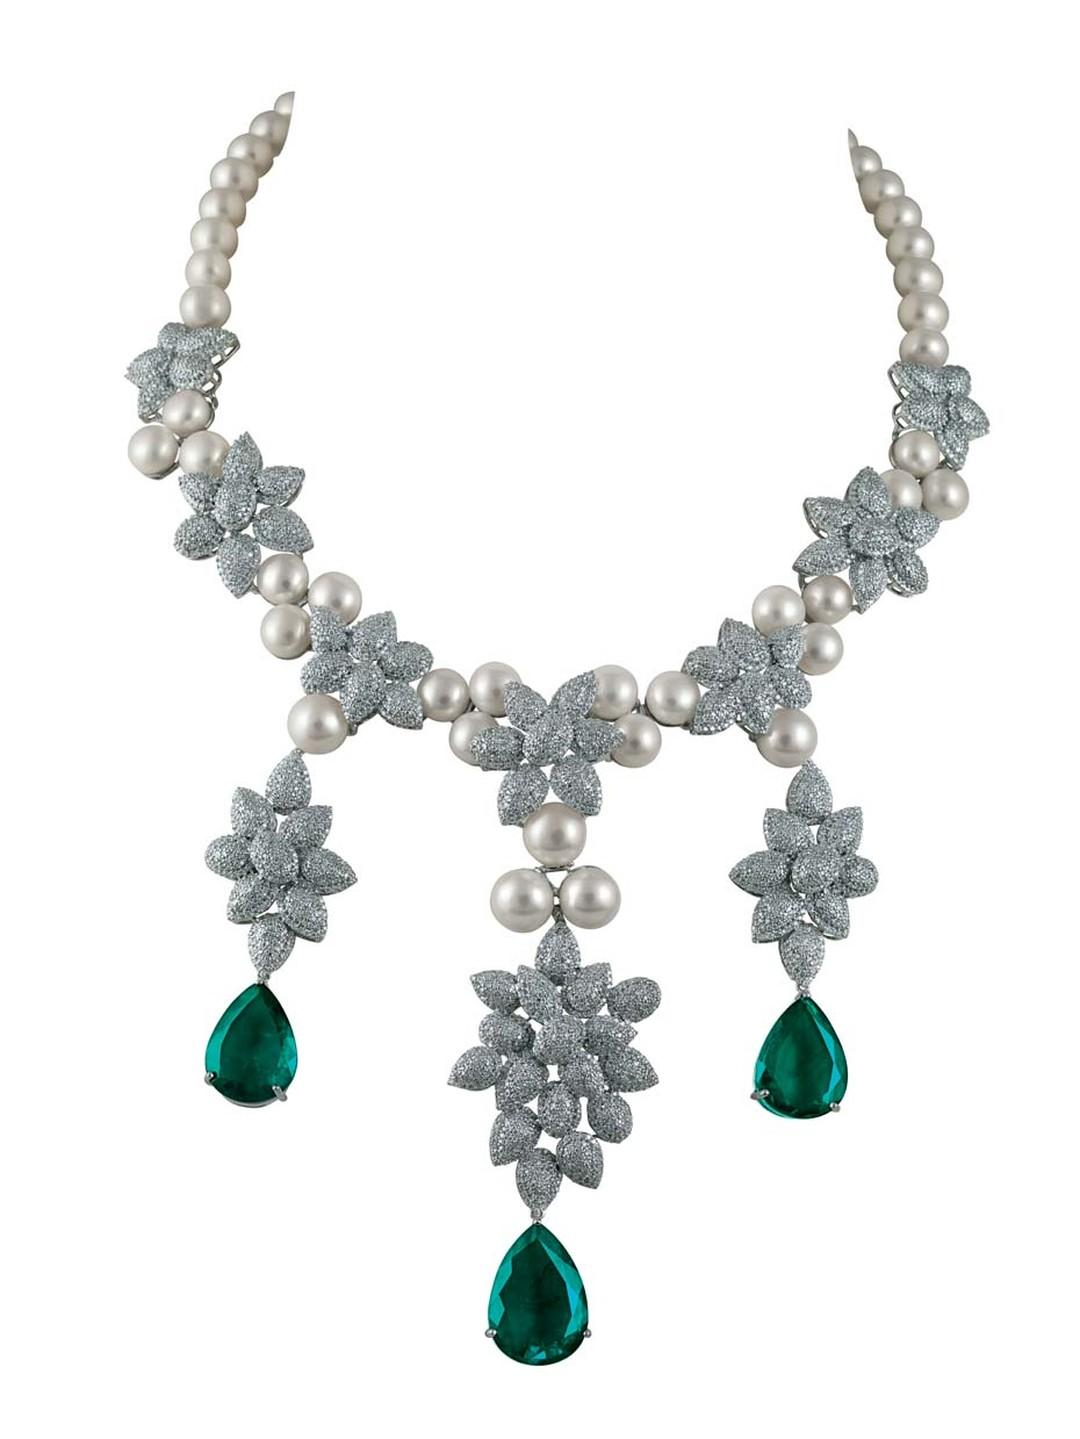 MINAWALA Festival of Emeralds collection necklace in white gold with diamonds, emeralds and pearls